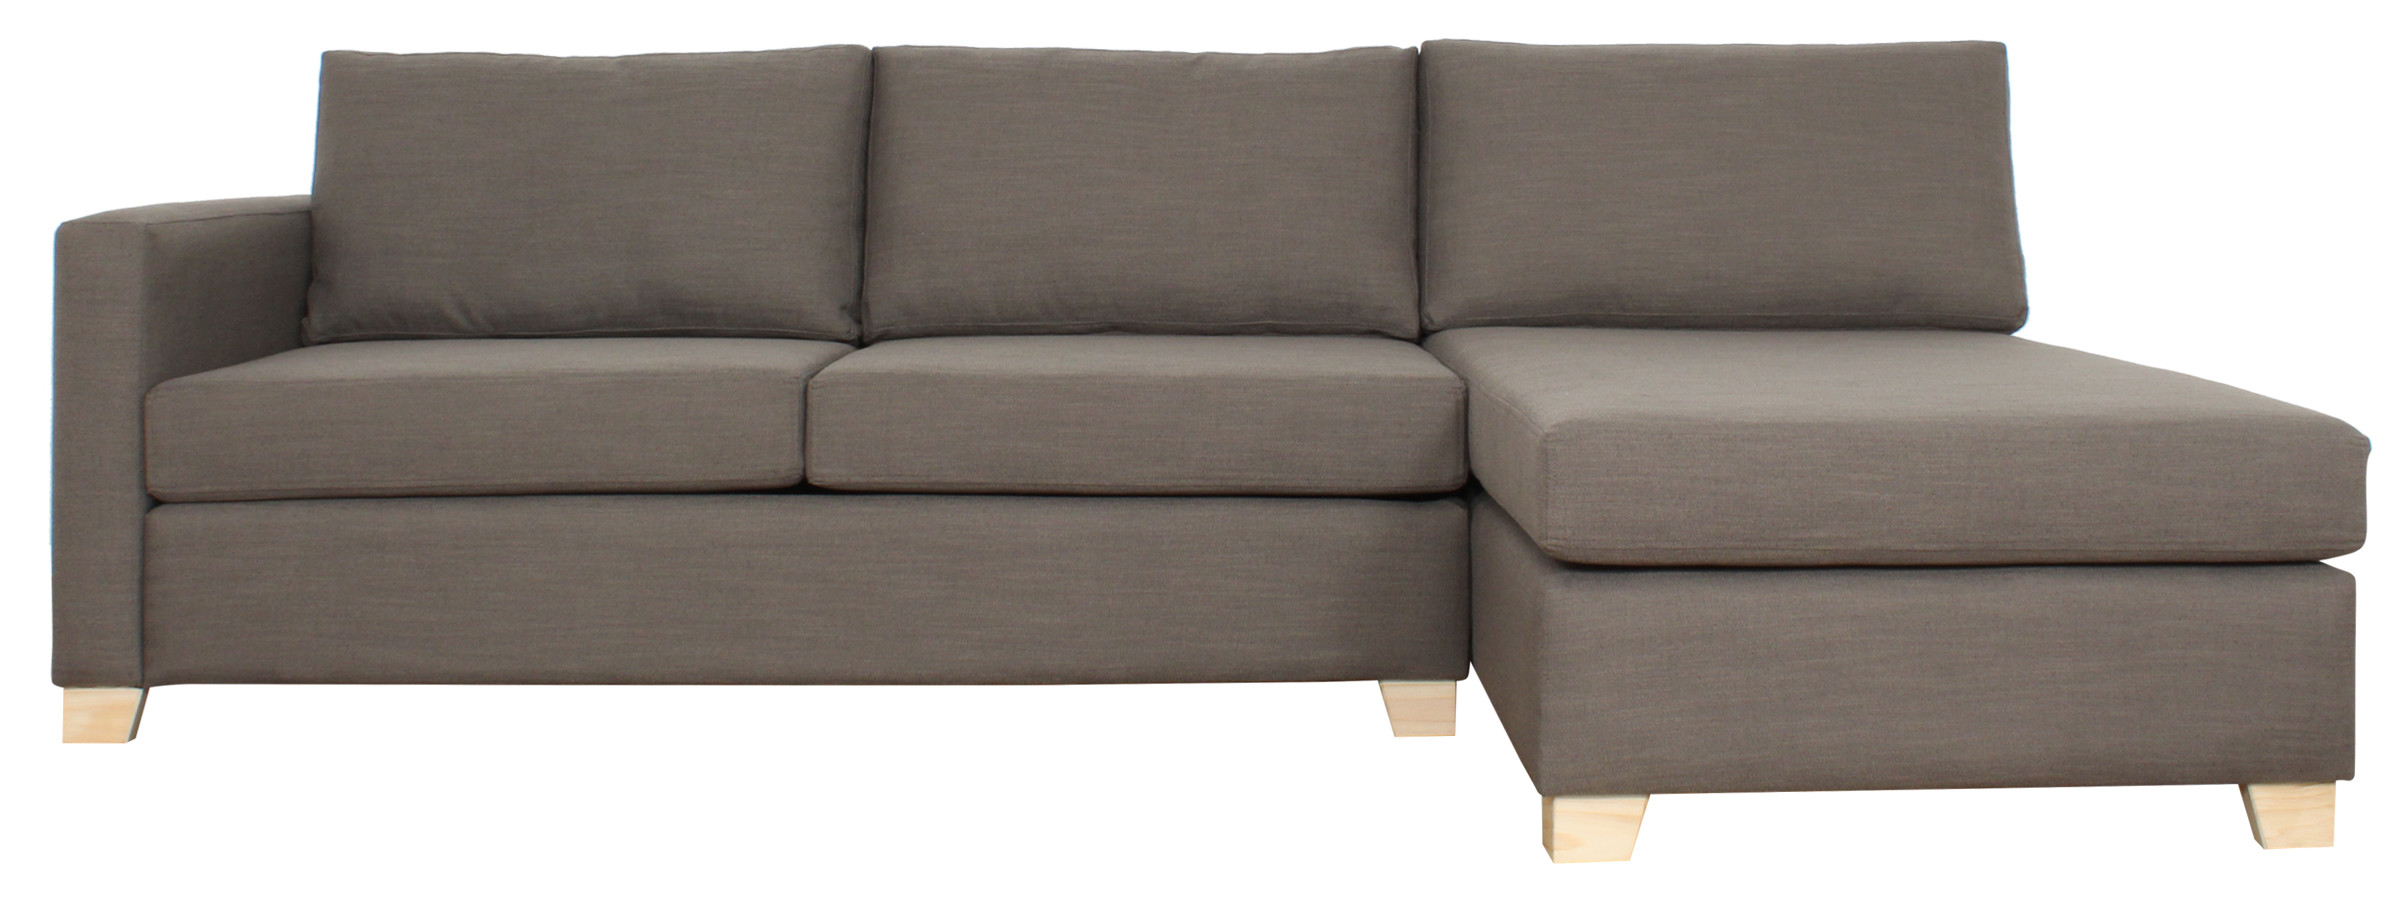 Sofa Cama New York 11